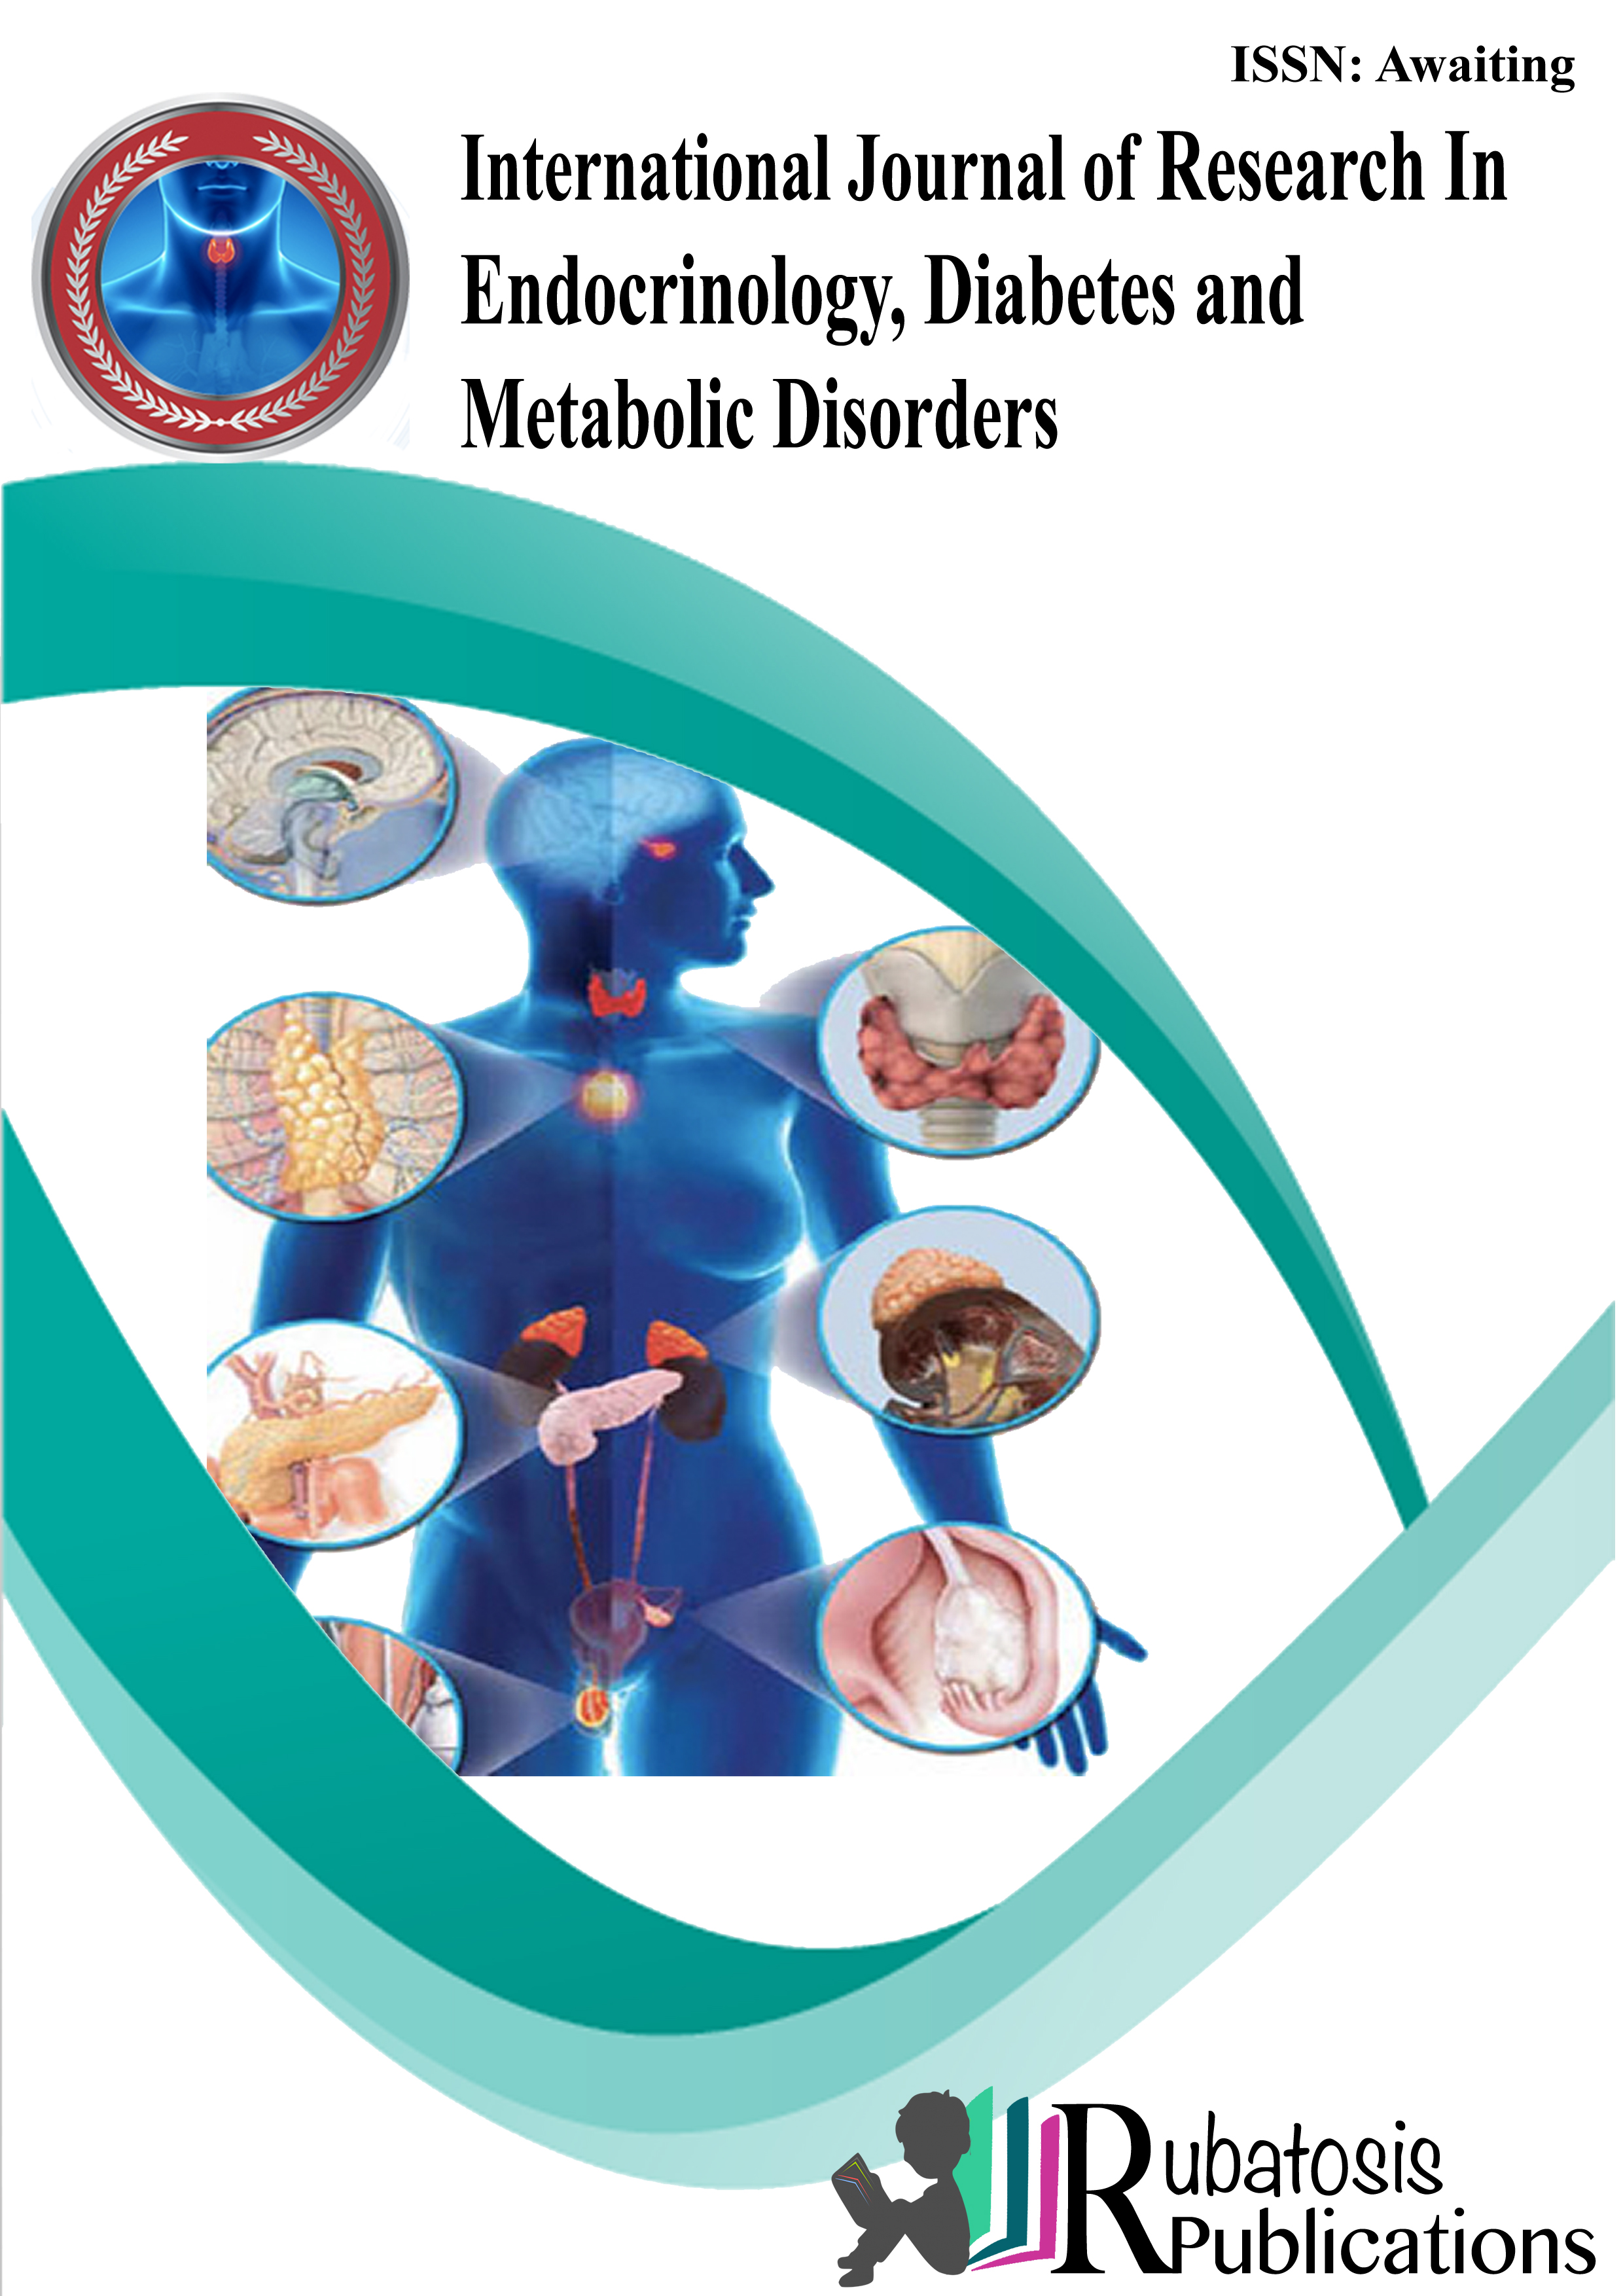 International Journal of Research In Endocrinology, Diabetes And Metabolic Disorders